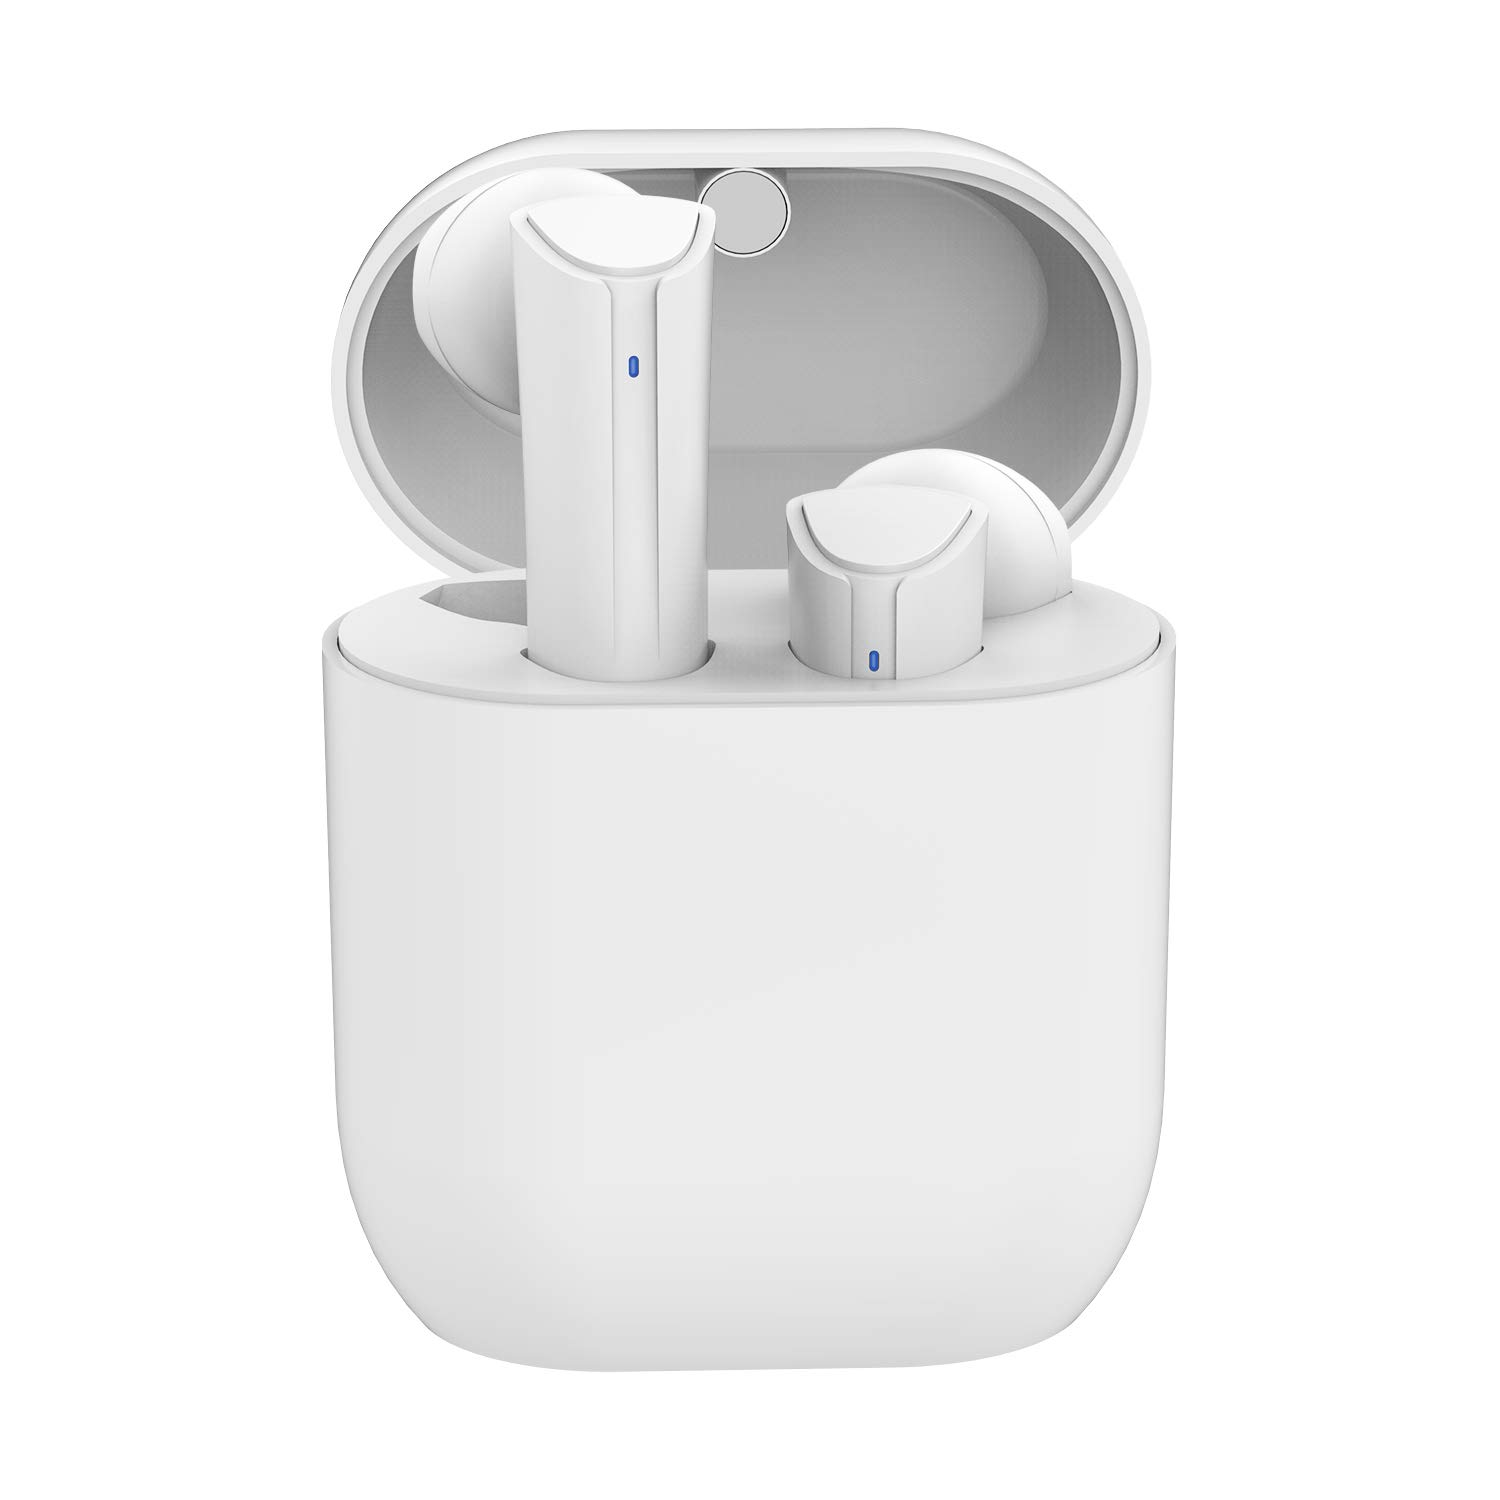 Wireless Earbuds Bluetooth 5.0 Headphones, Cshidworld True Wireless Stereo Earphones with 35Hrs Playback, Hi-fi Sound Bluetooth Headset with Charging Case, One-Step Pairing (White) by Cshidworld (Image #1)